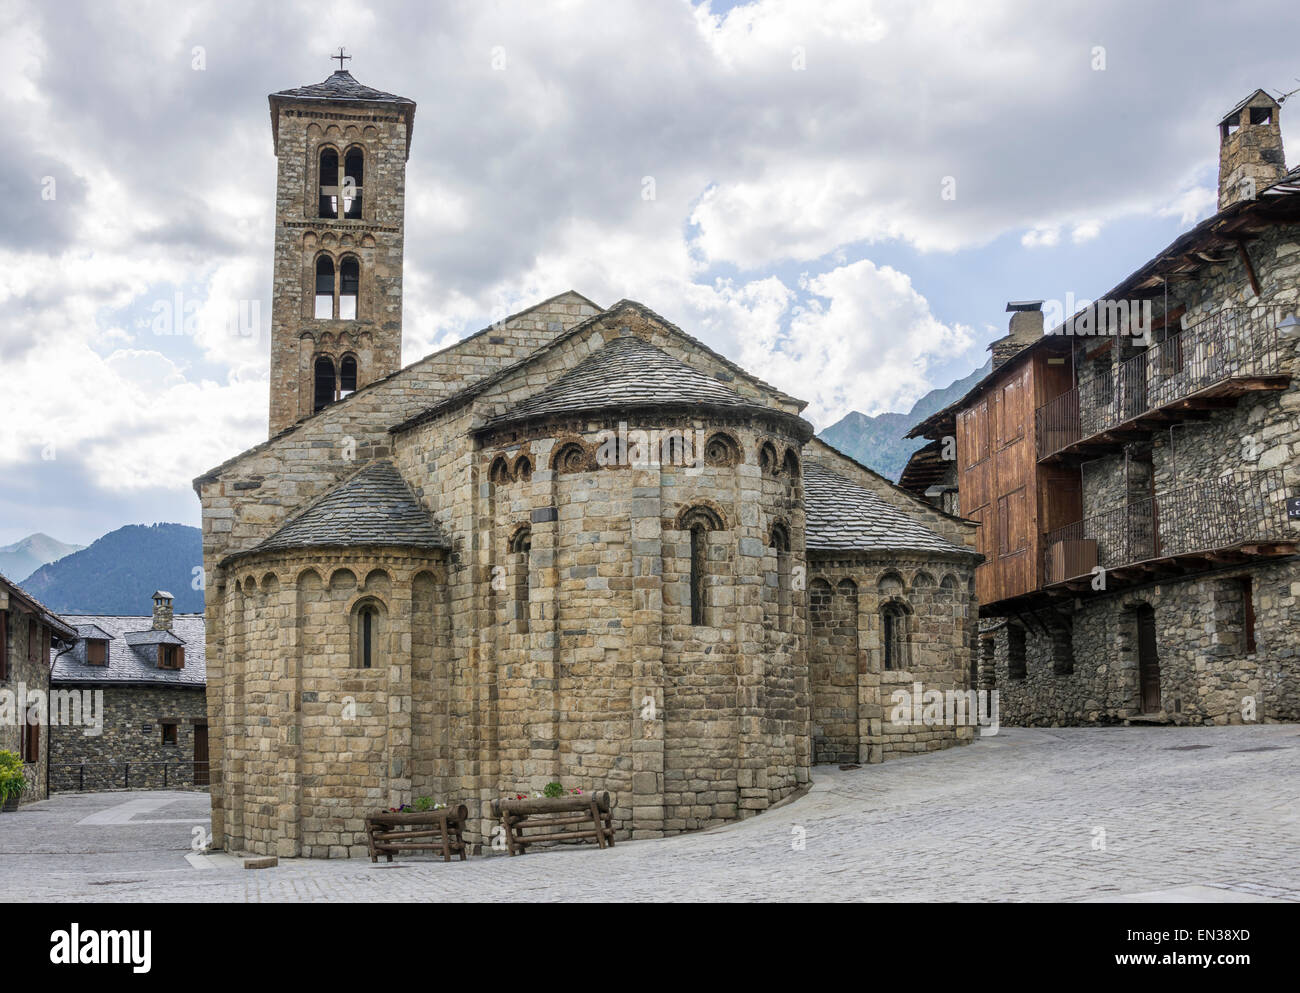 Romanesque church of Santa Maria de Taüll, Unesco World Heritage Site, Vall de Boí, Taüll, Catalonia, - Stock Image